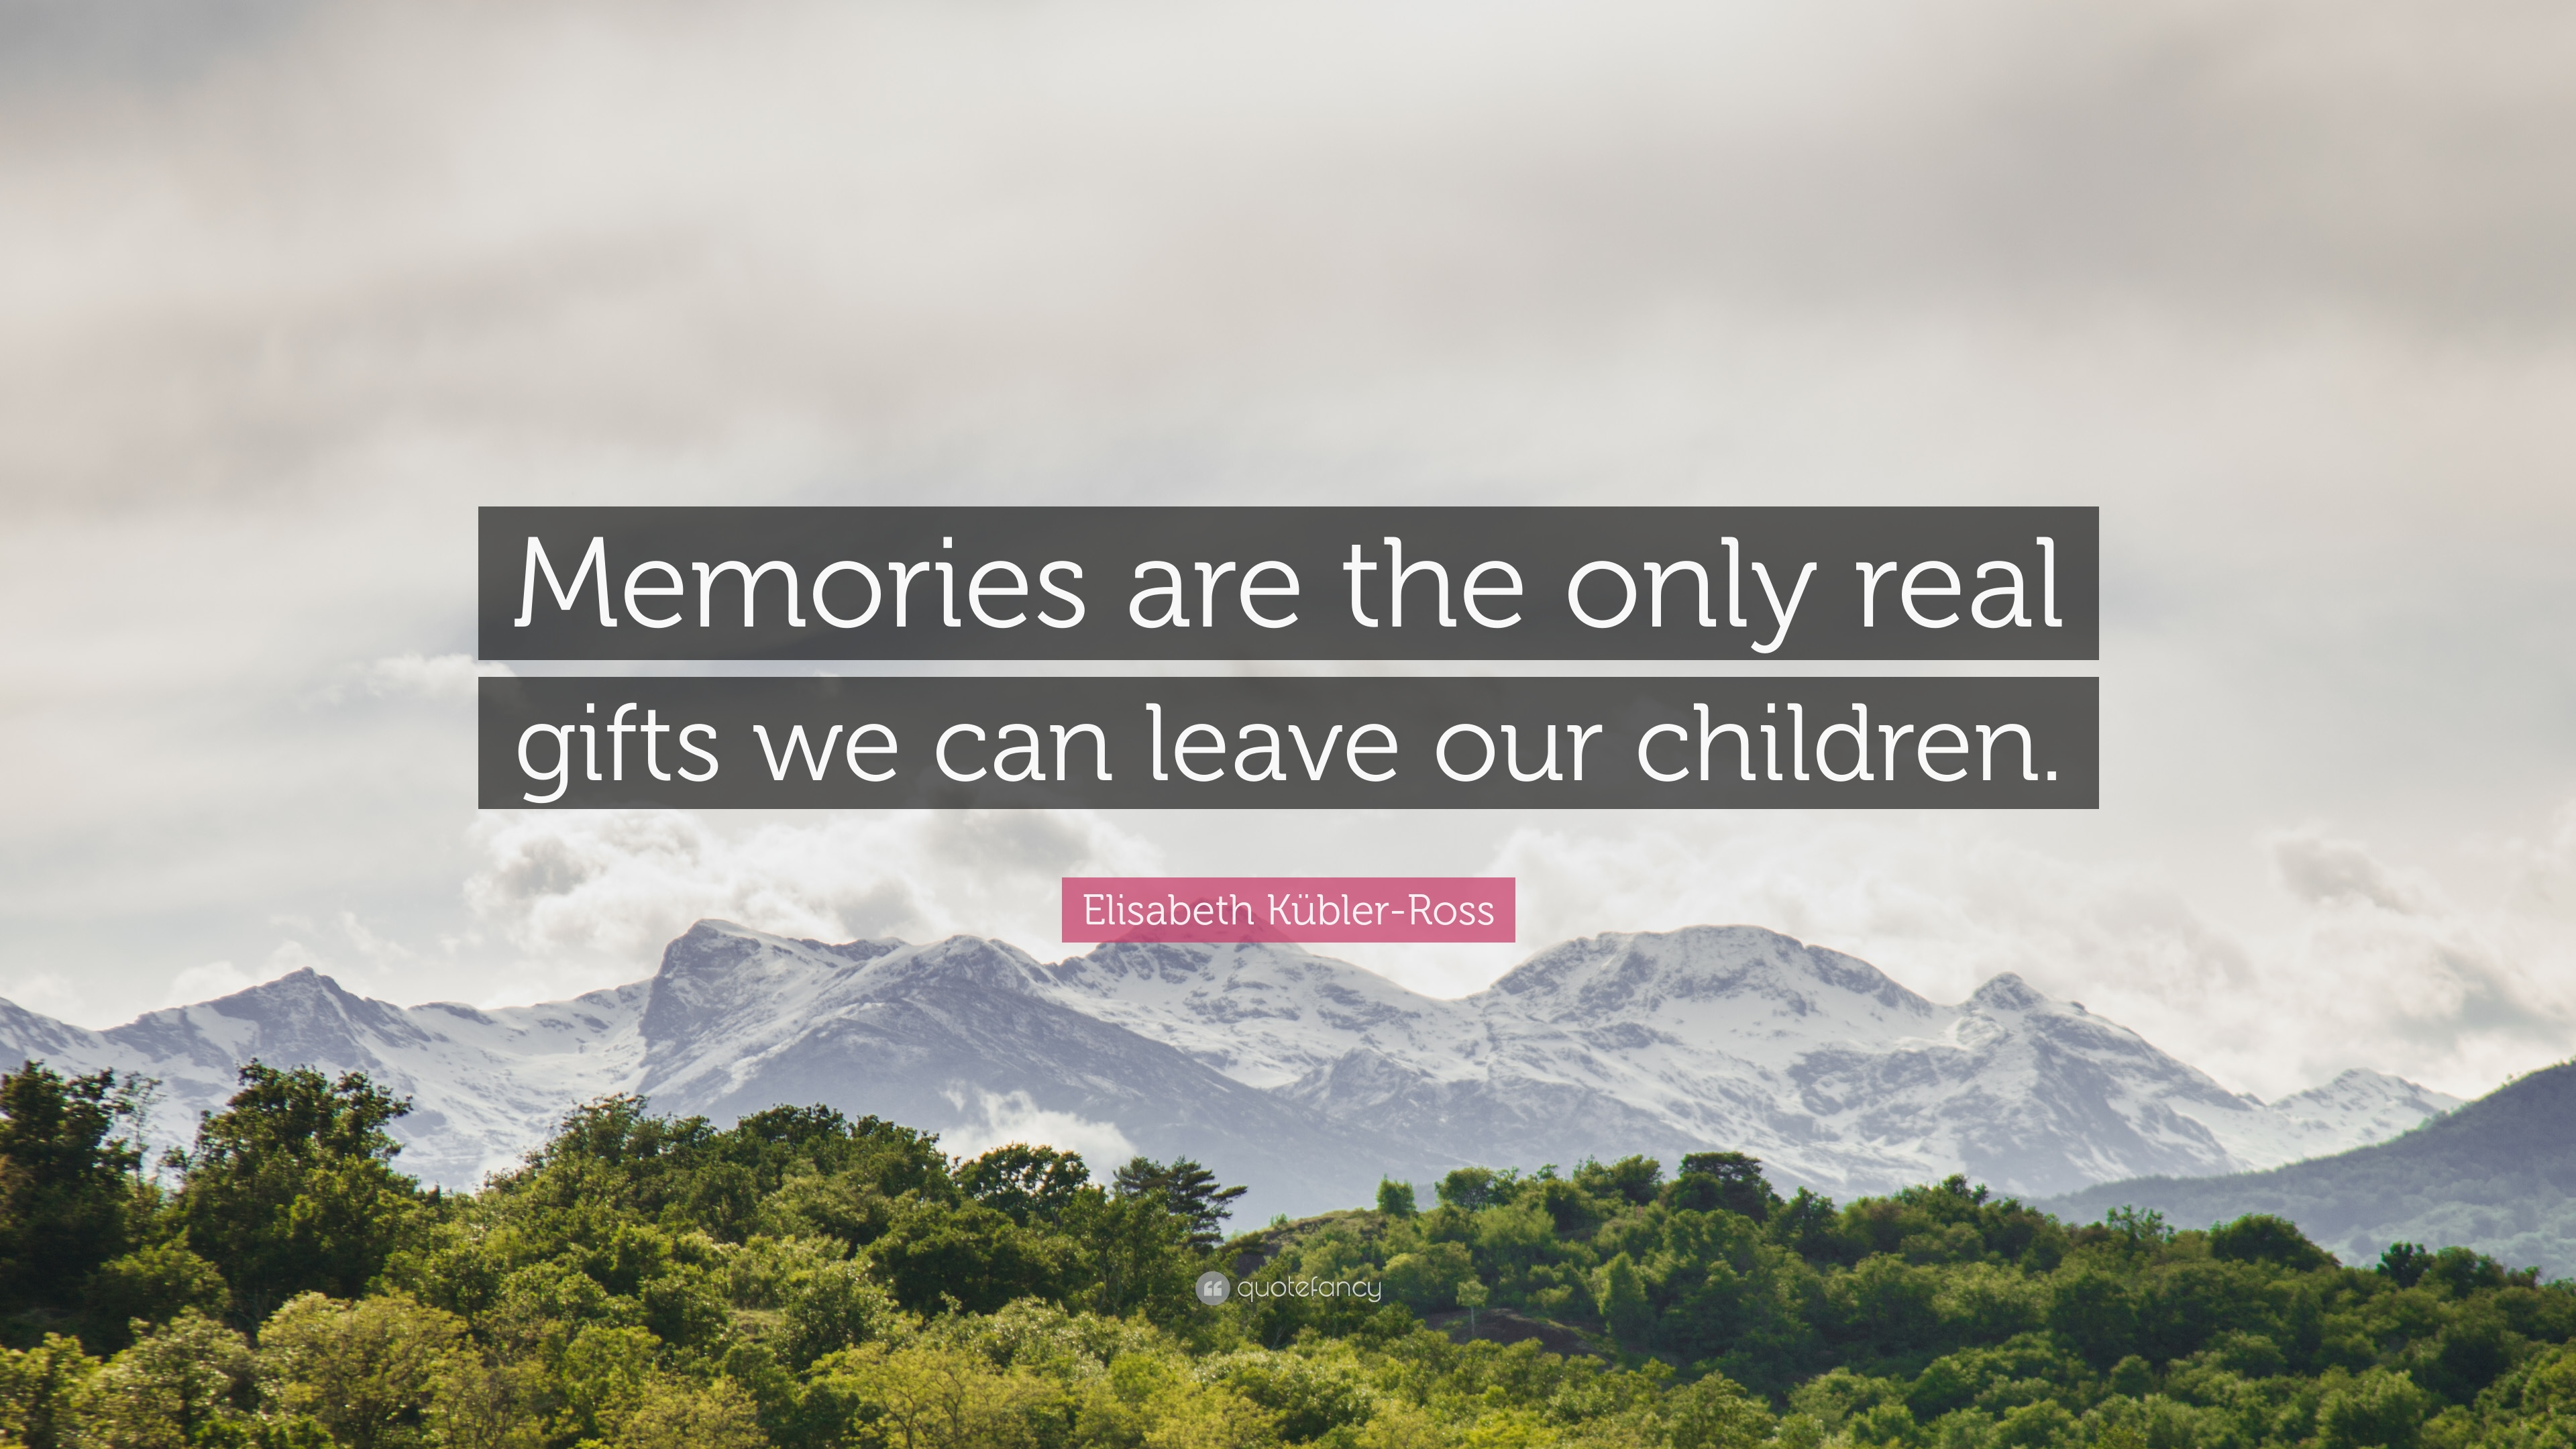 elisabeth kübler ross quote memories are the only real gifts we